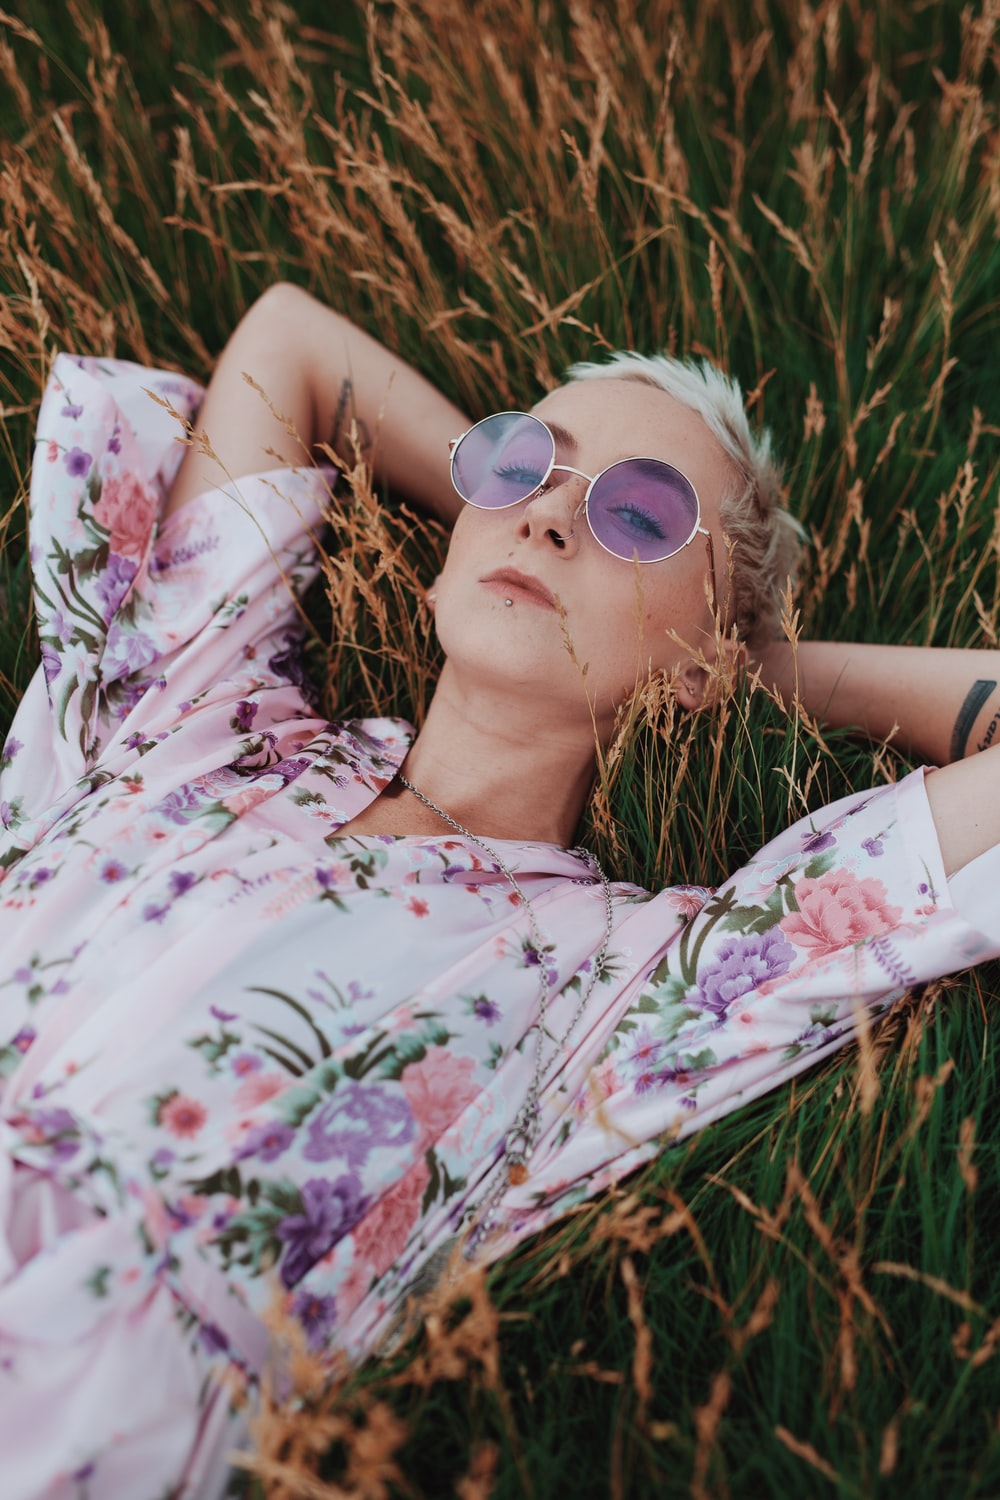 woman in white floral dress lying on grass field